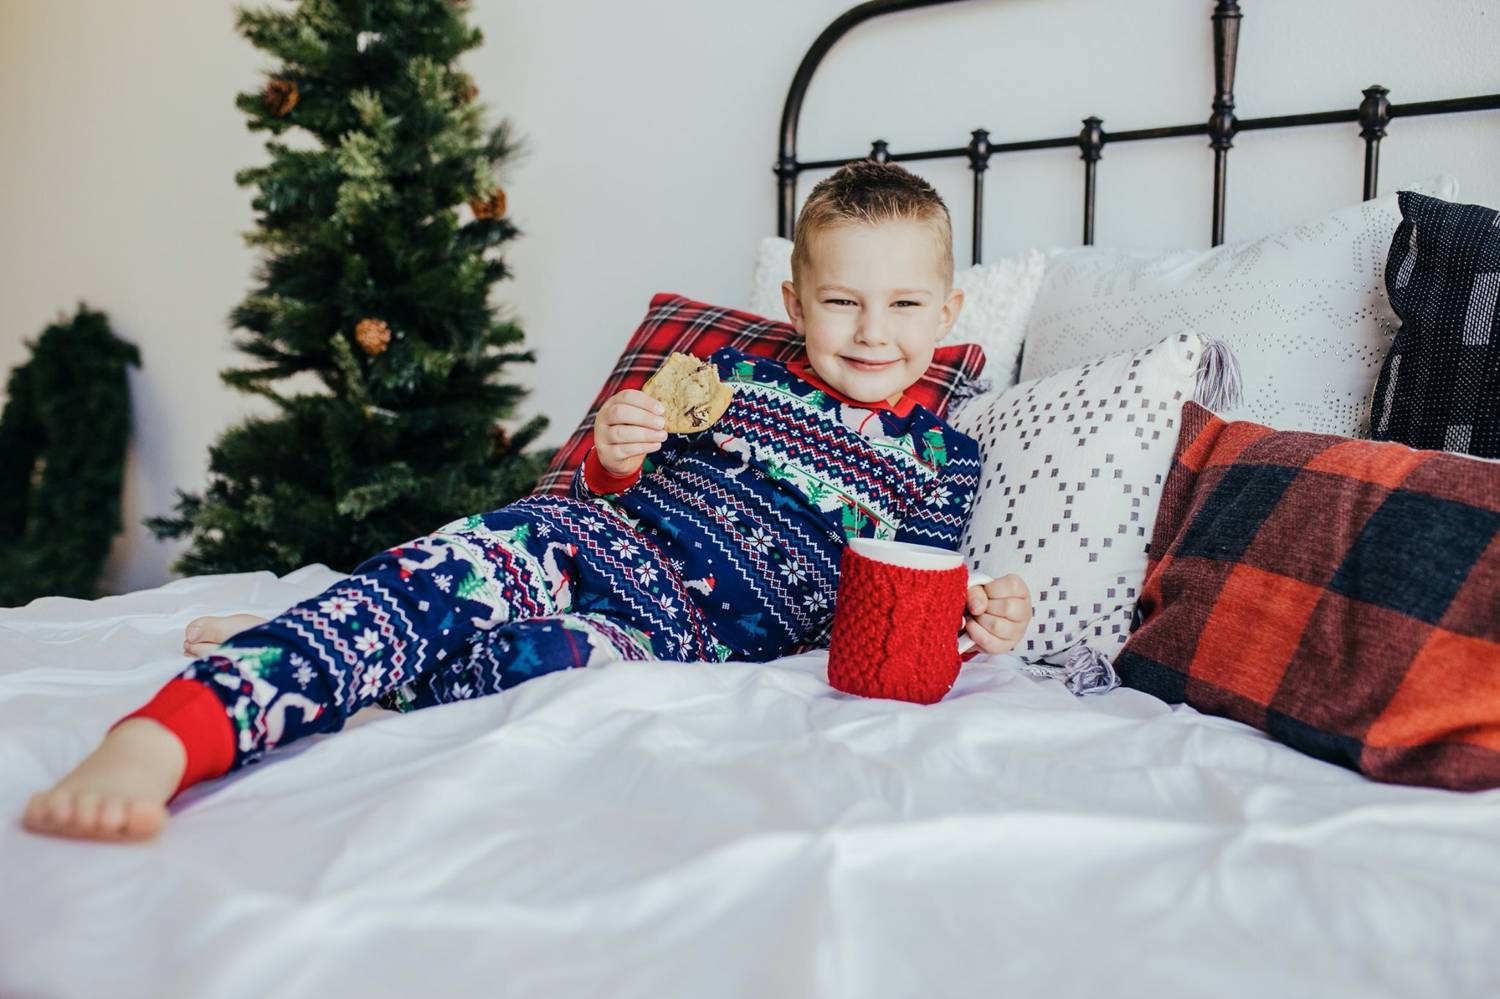 In this photo by Logan Fahey, a little boy wearing Christmas pajamas reclines on a white bed with a cookie and a red mug of hot cocoa in his hands. Christmas Mini Session: Ideas Families will ADORE!